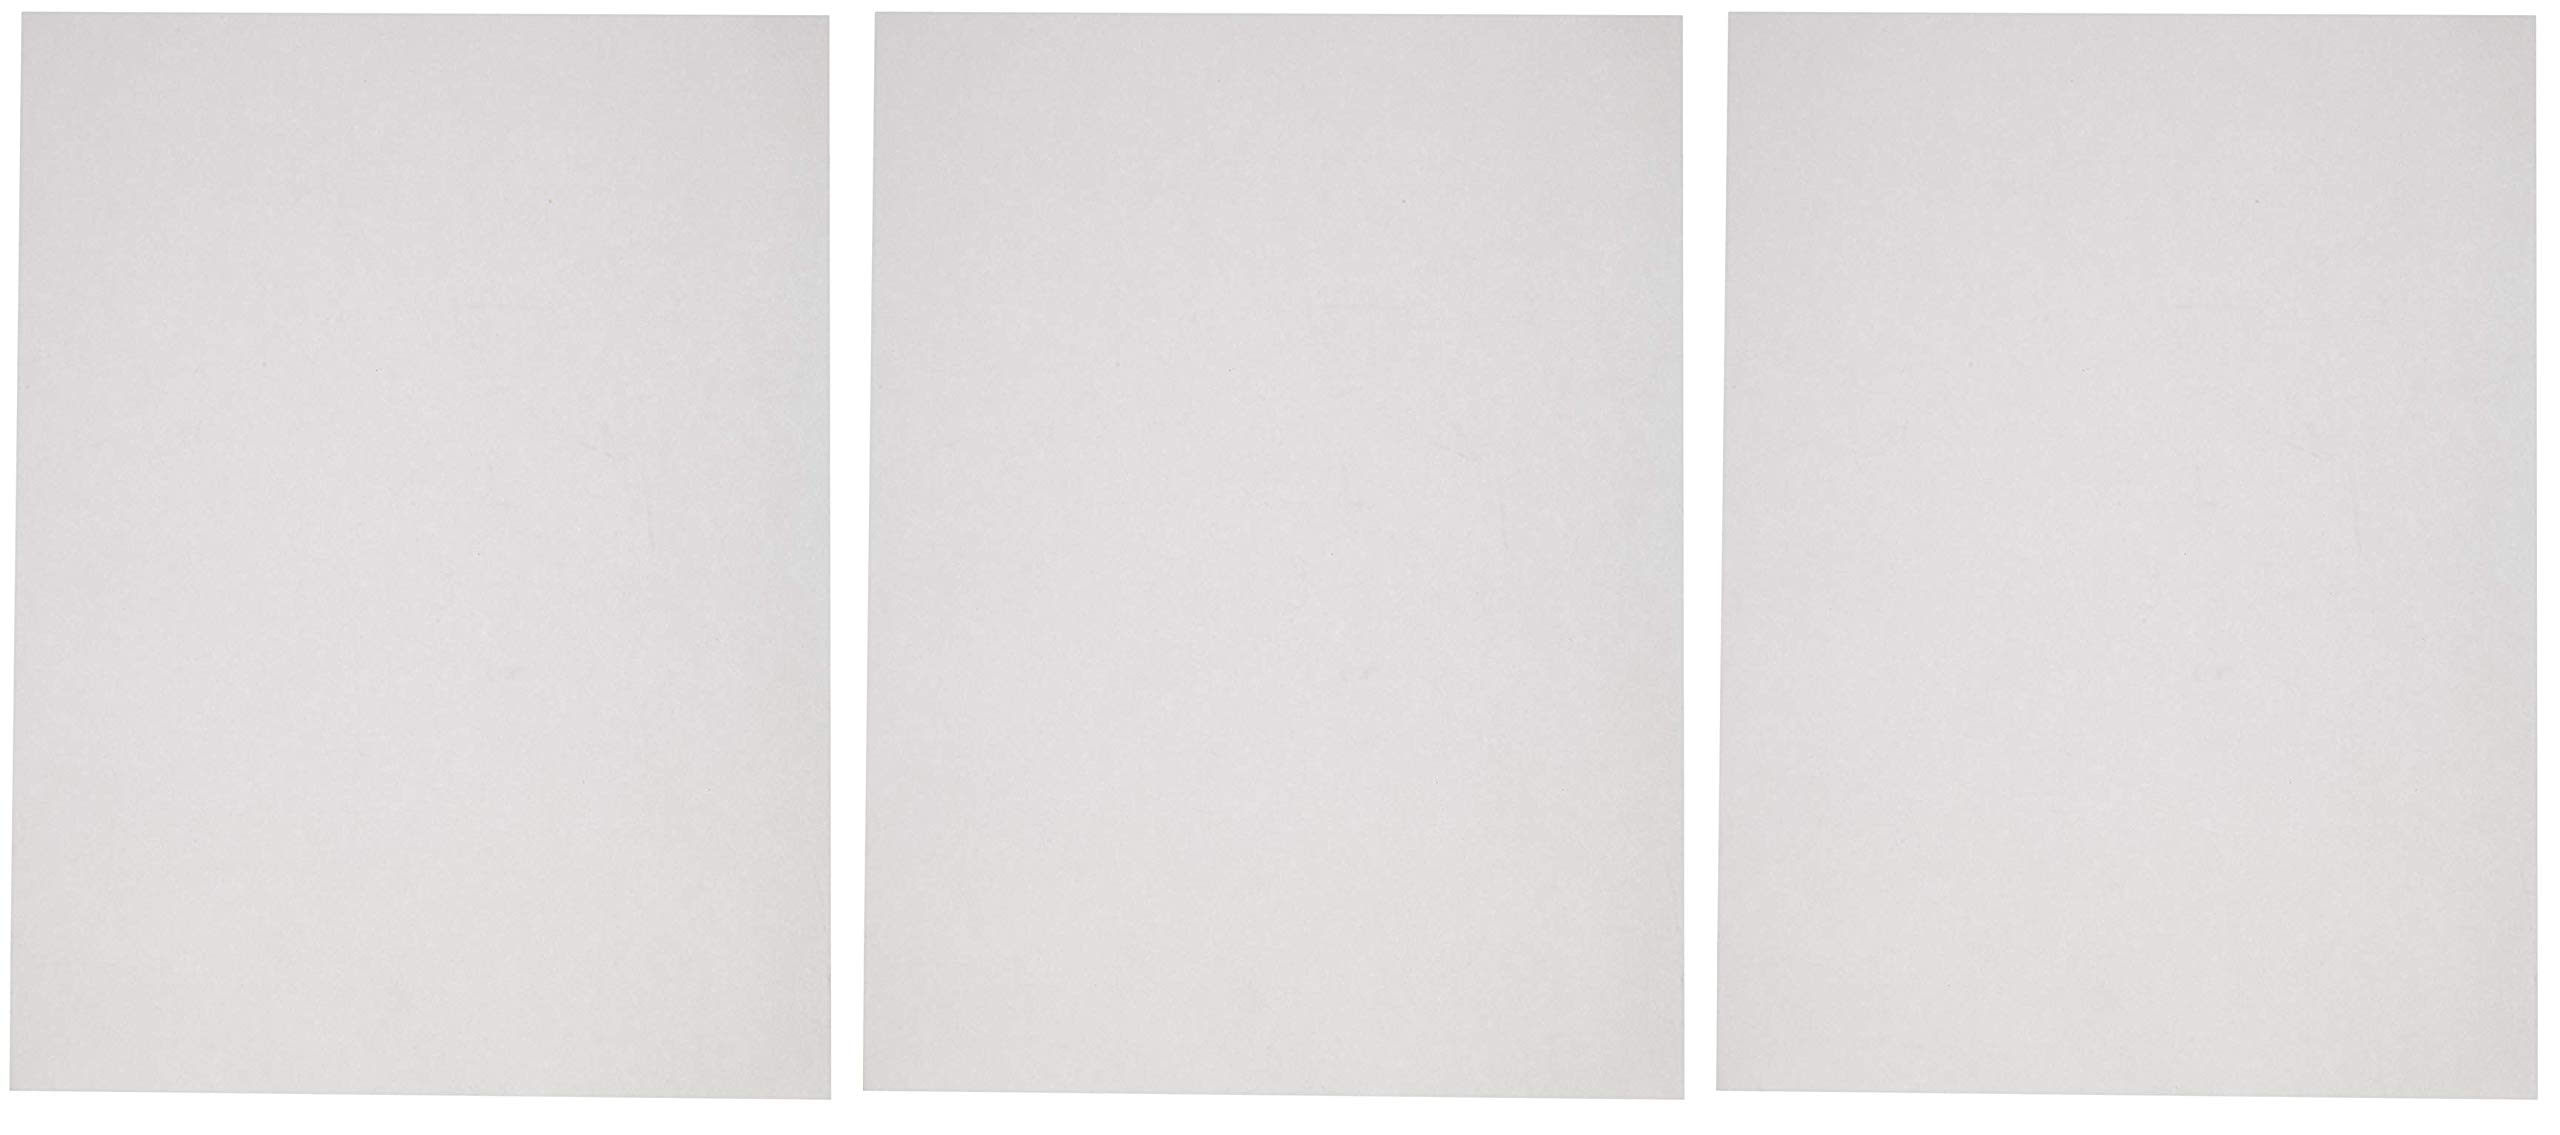 Sax Sulphite Drawing Paper, 50 lb, 9 x 12 Inches, Extra-White, Pack of 500 (Вundlе оf Тhrее)